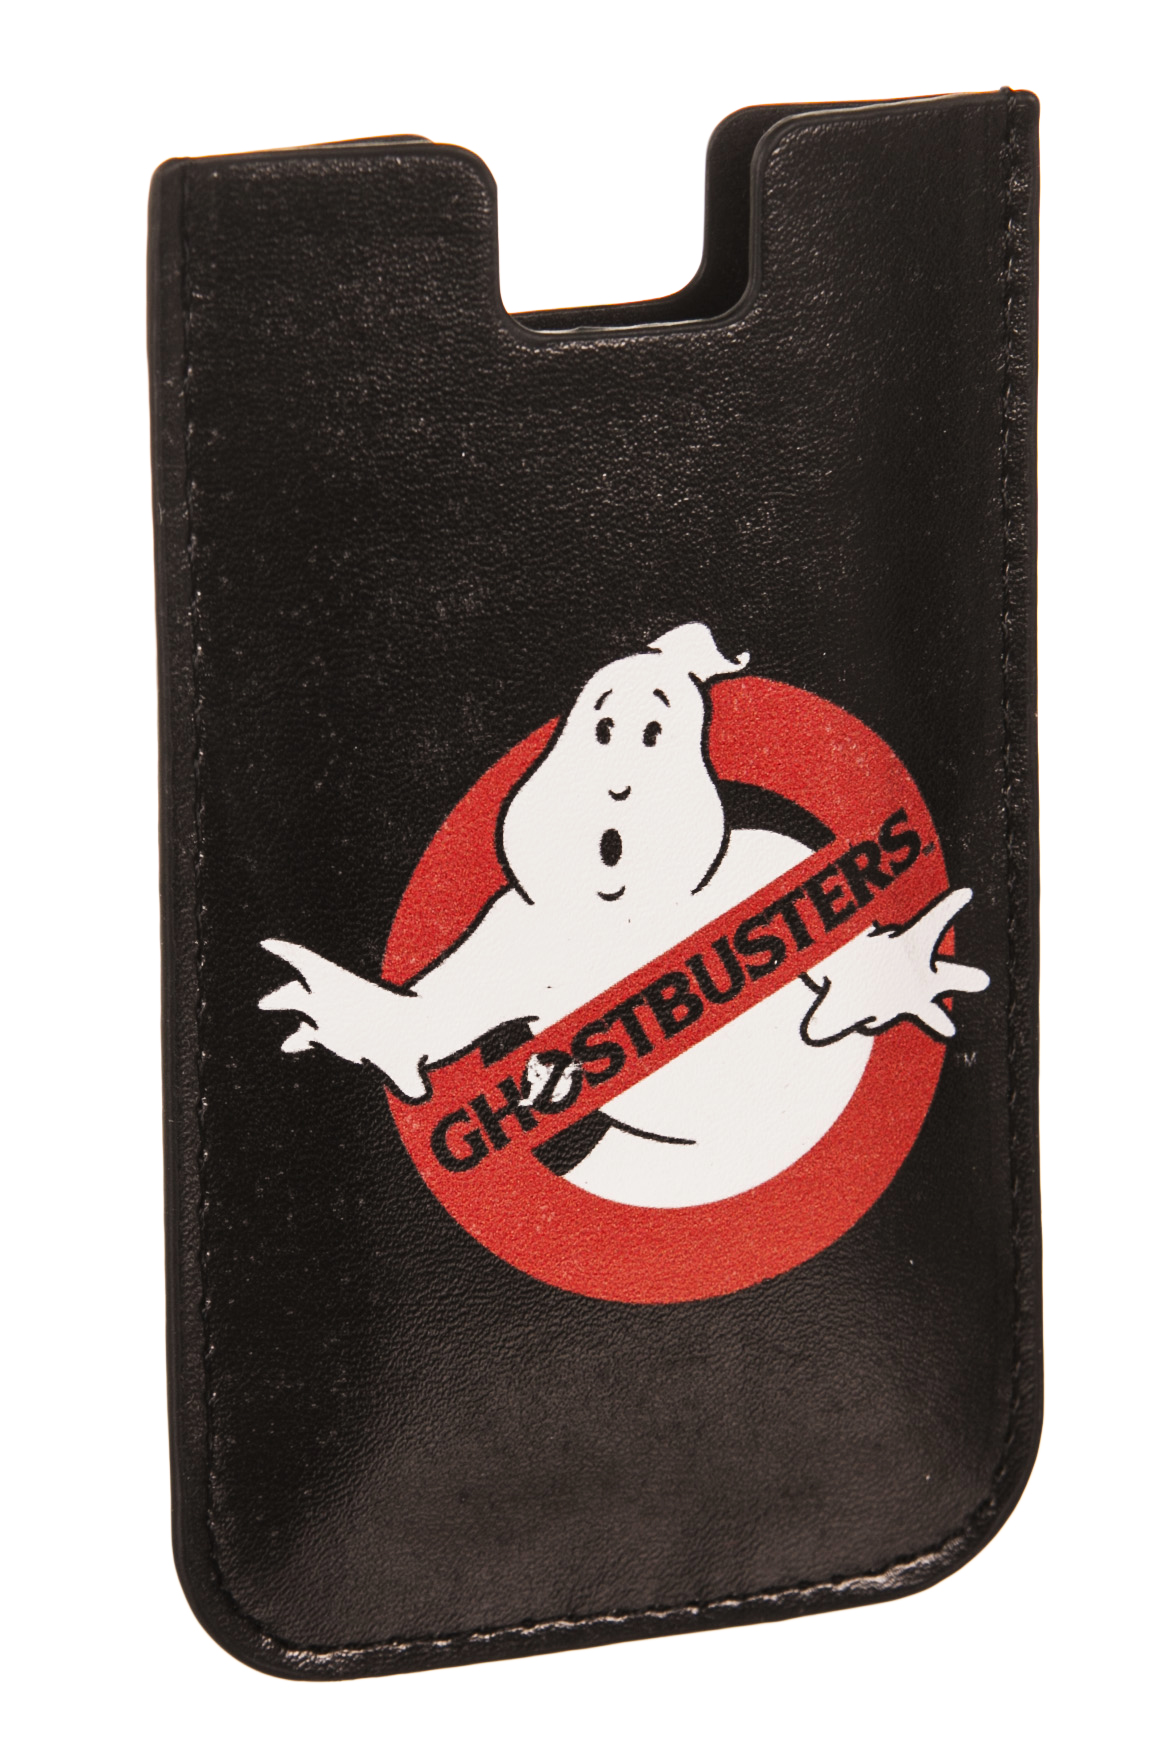 Black Ghostbusters Logo iPhone Cover